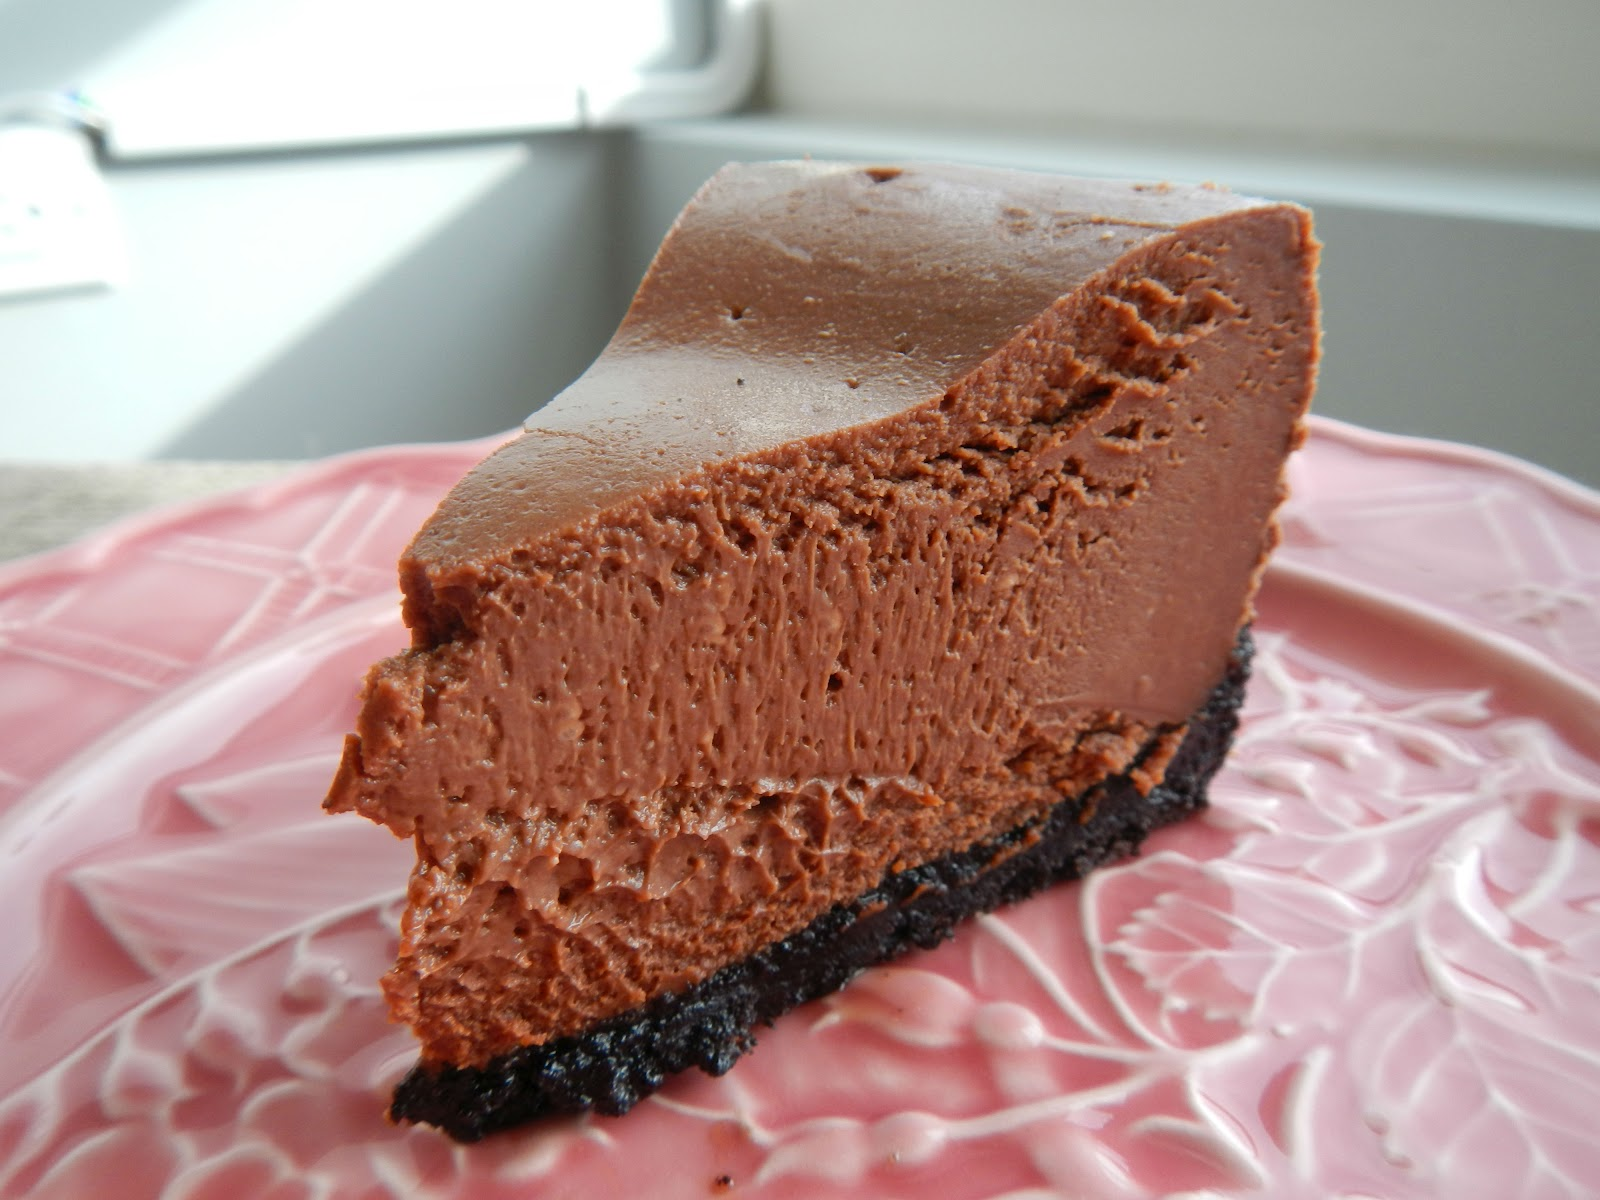 My Food Affair: Chocolate Cheesecake